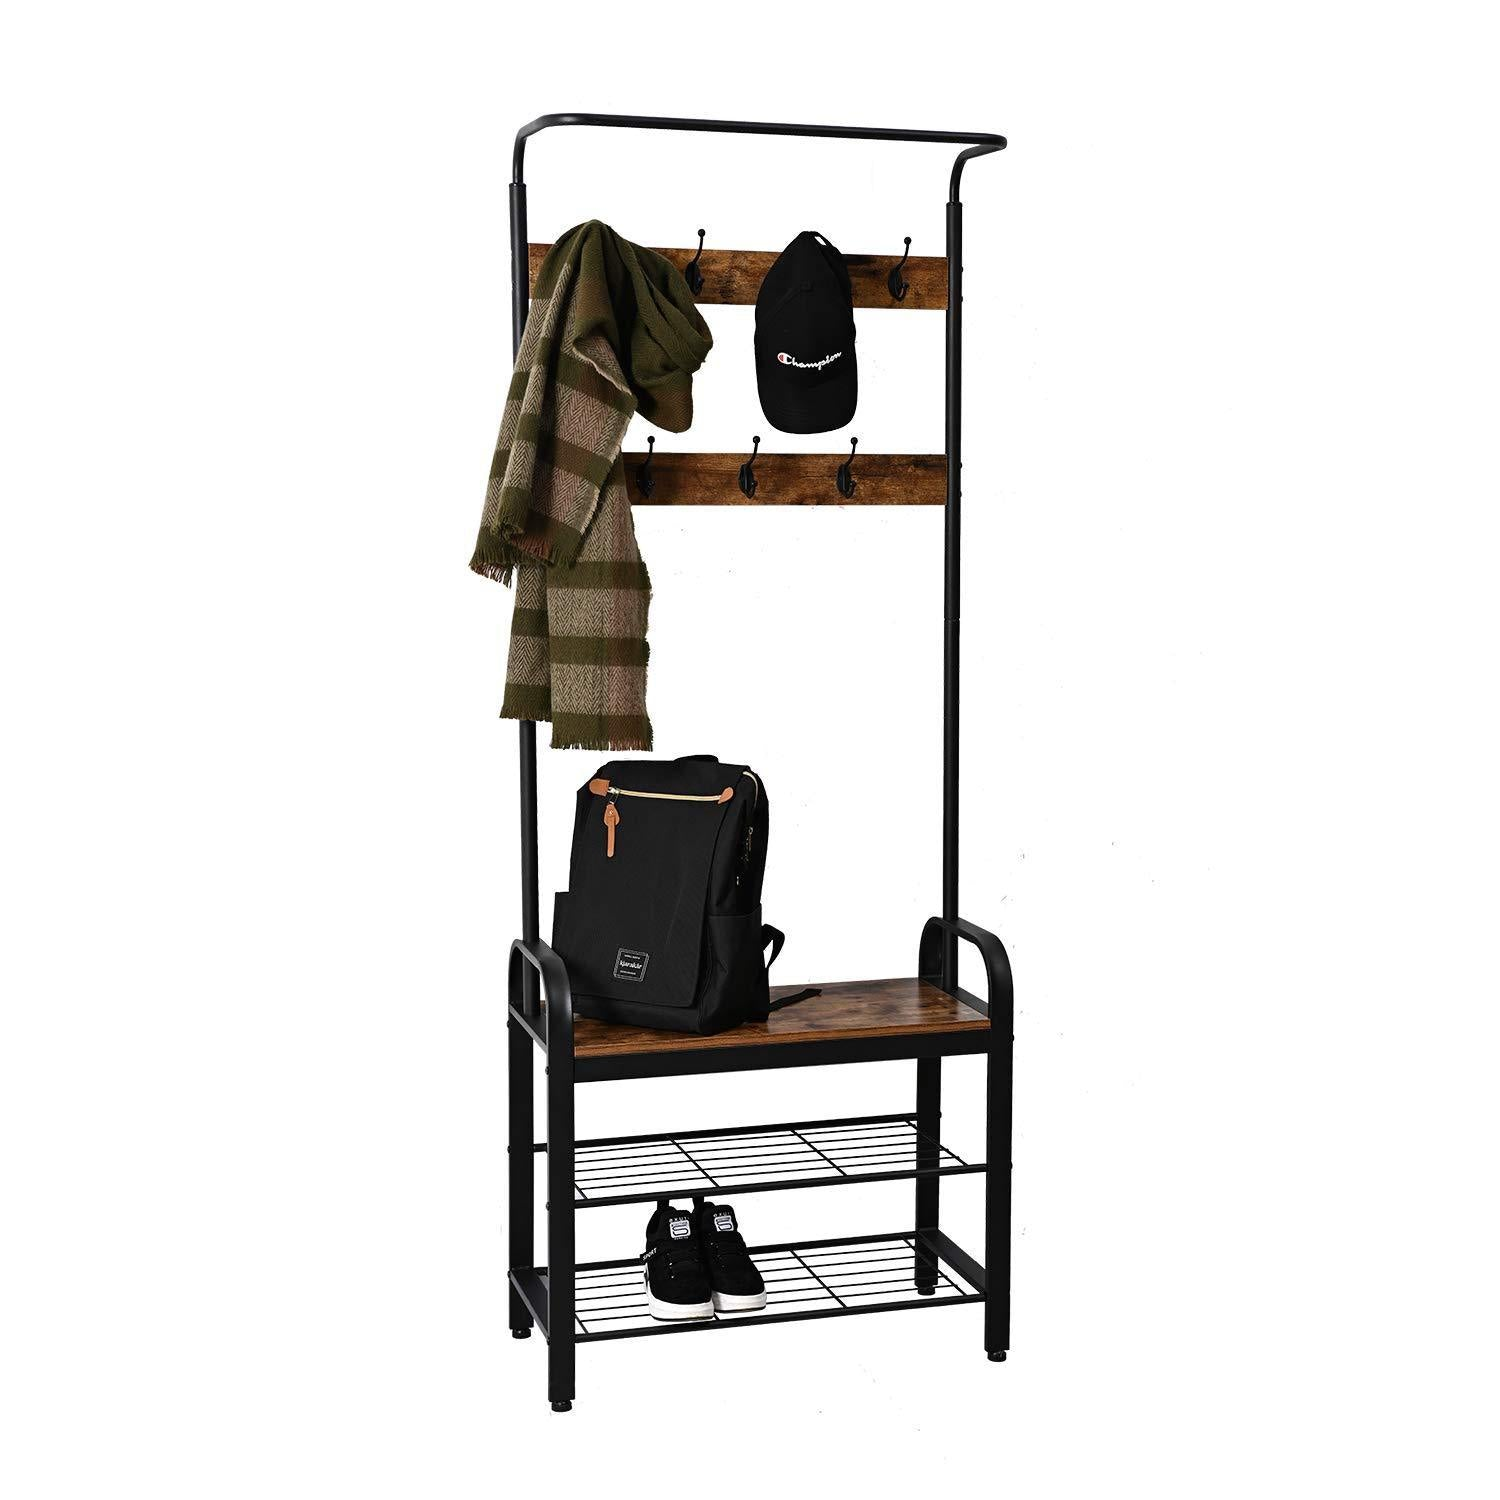 Purchase ironck coat rack free standing hall tree entryway bench entryway organizer vintage industrial coat stand 3 in 1 design wood look accent furniture with stable metal frame easy assembly